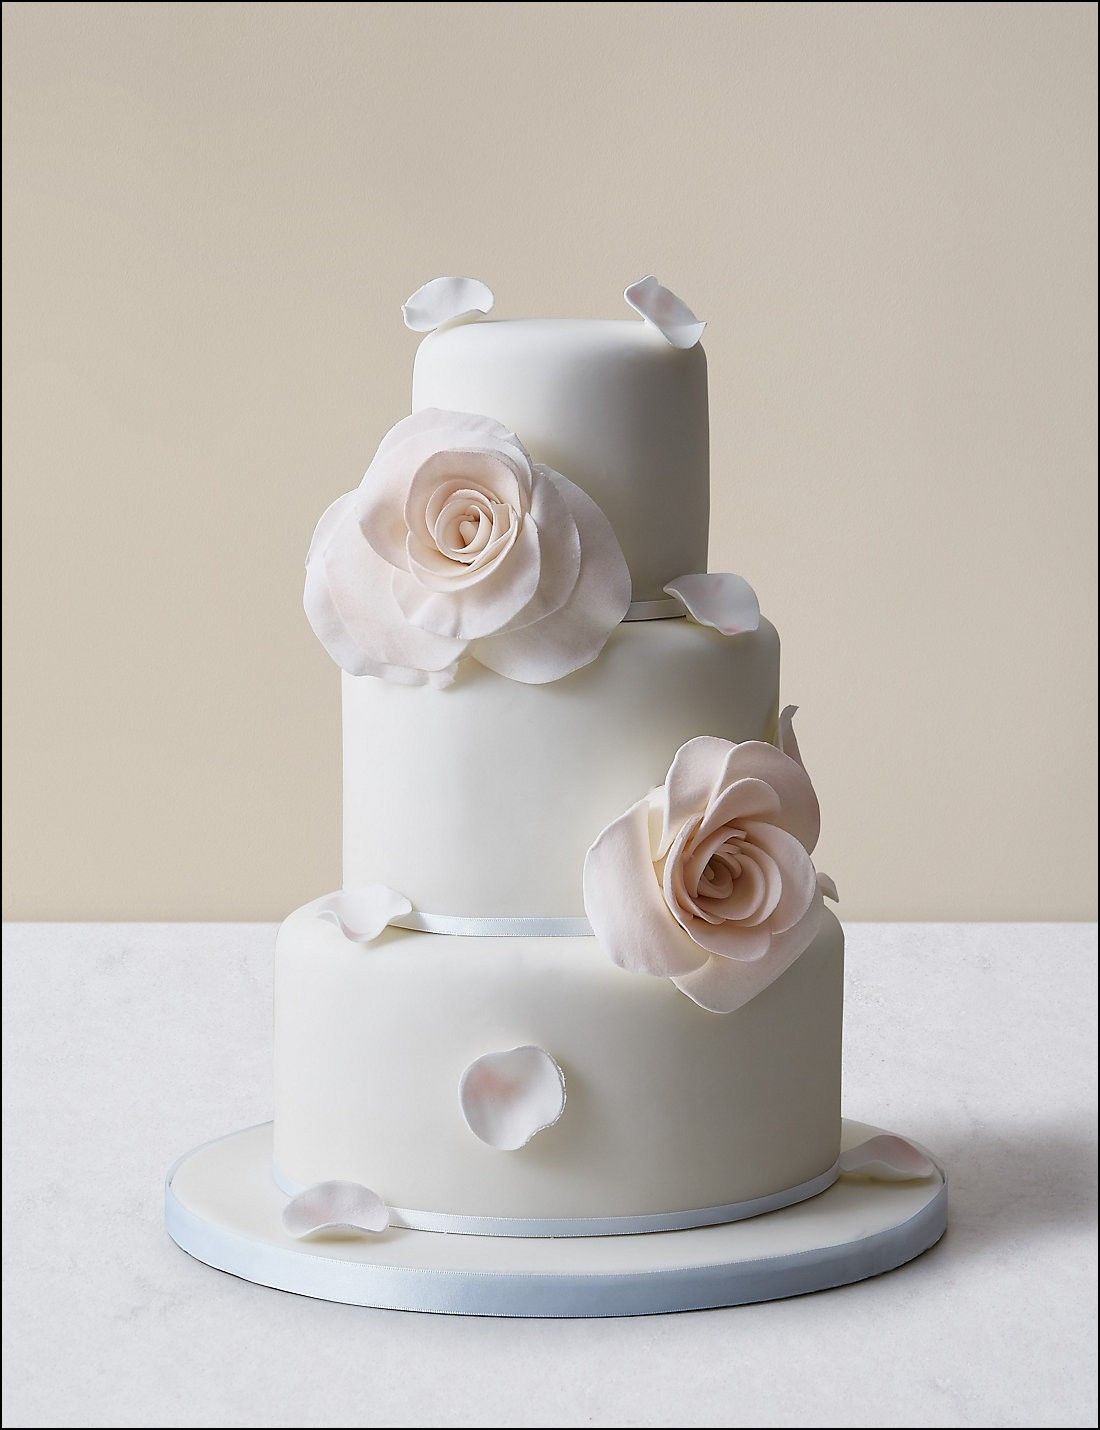 Wedding cakes at marks and spencer wedding ideas pinterest